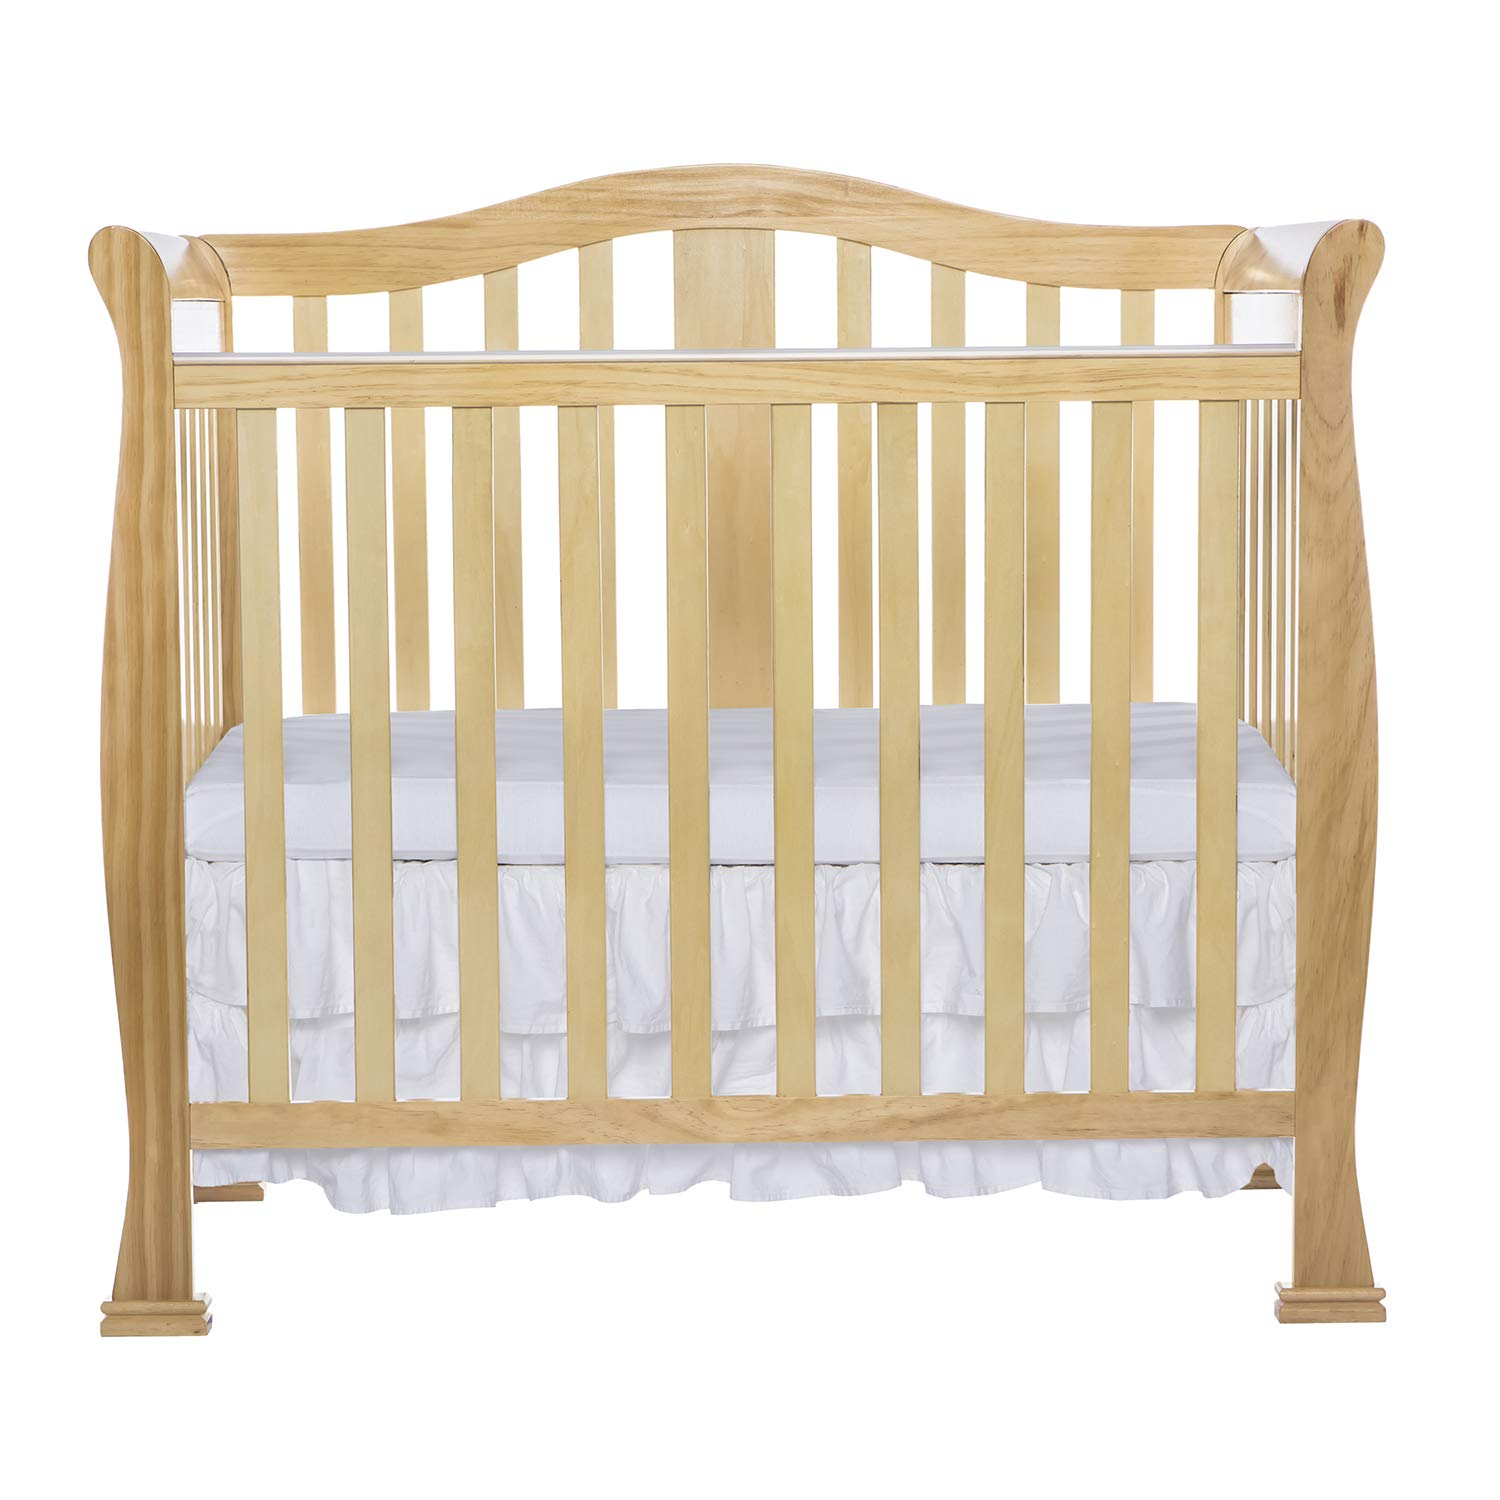 Dream On Me Addison, 4 in 1 Convertible Mini Crib, Espresso Dream On Me (DREKK) 633-E